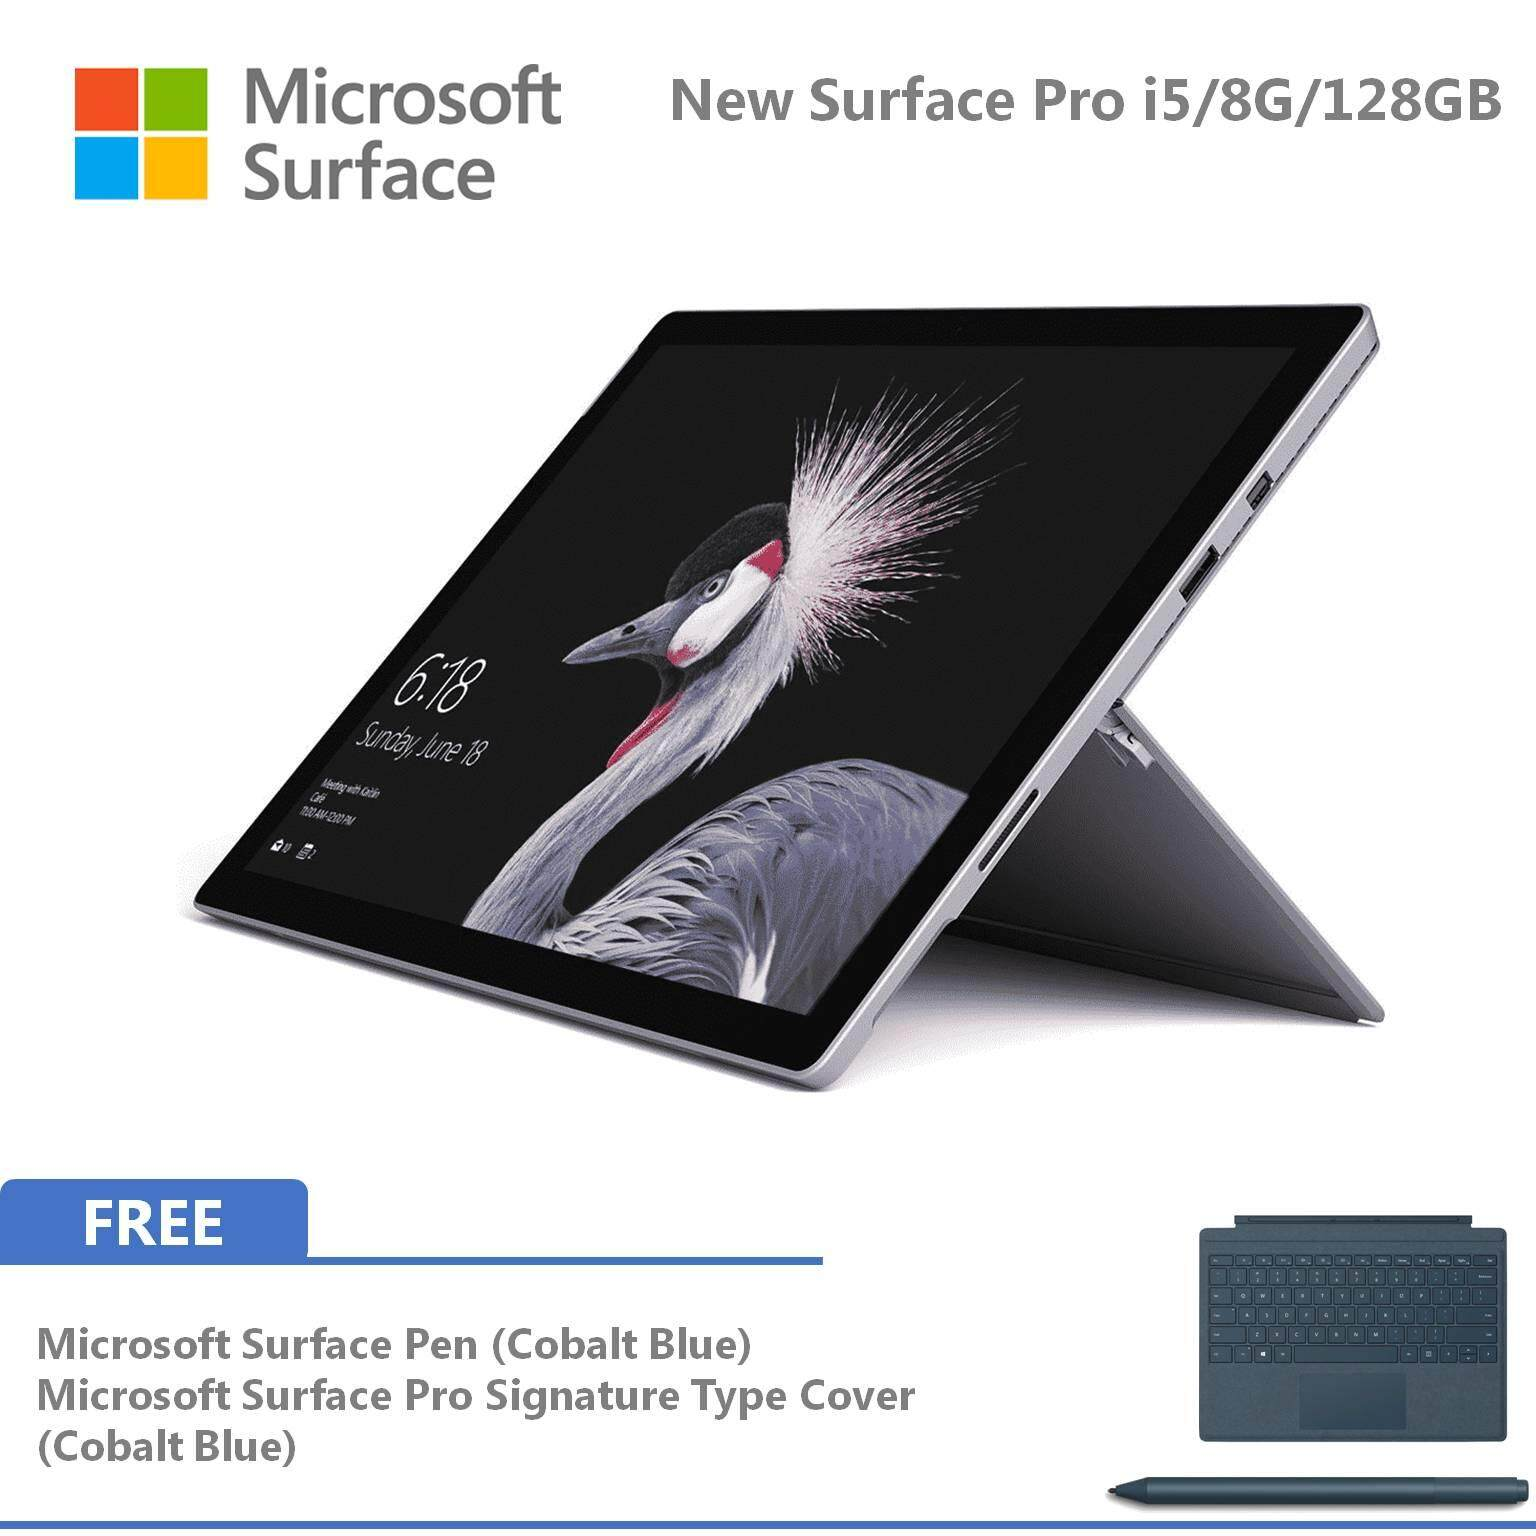 Microsoft New Surface Pro - 128GB / Intel Core i5 - 8GB RAM FOC Signature Type Cover + Pen Malaysia